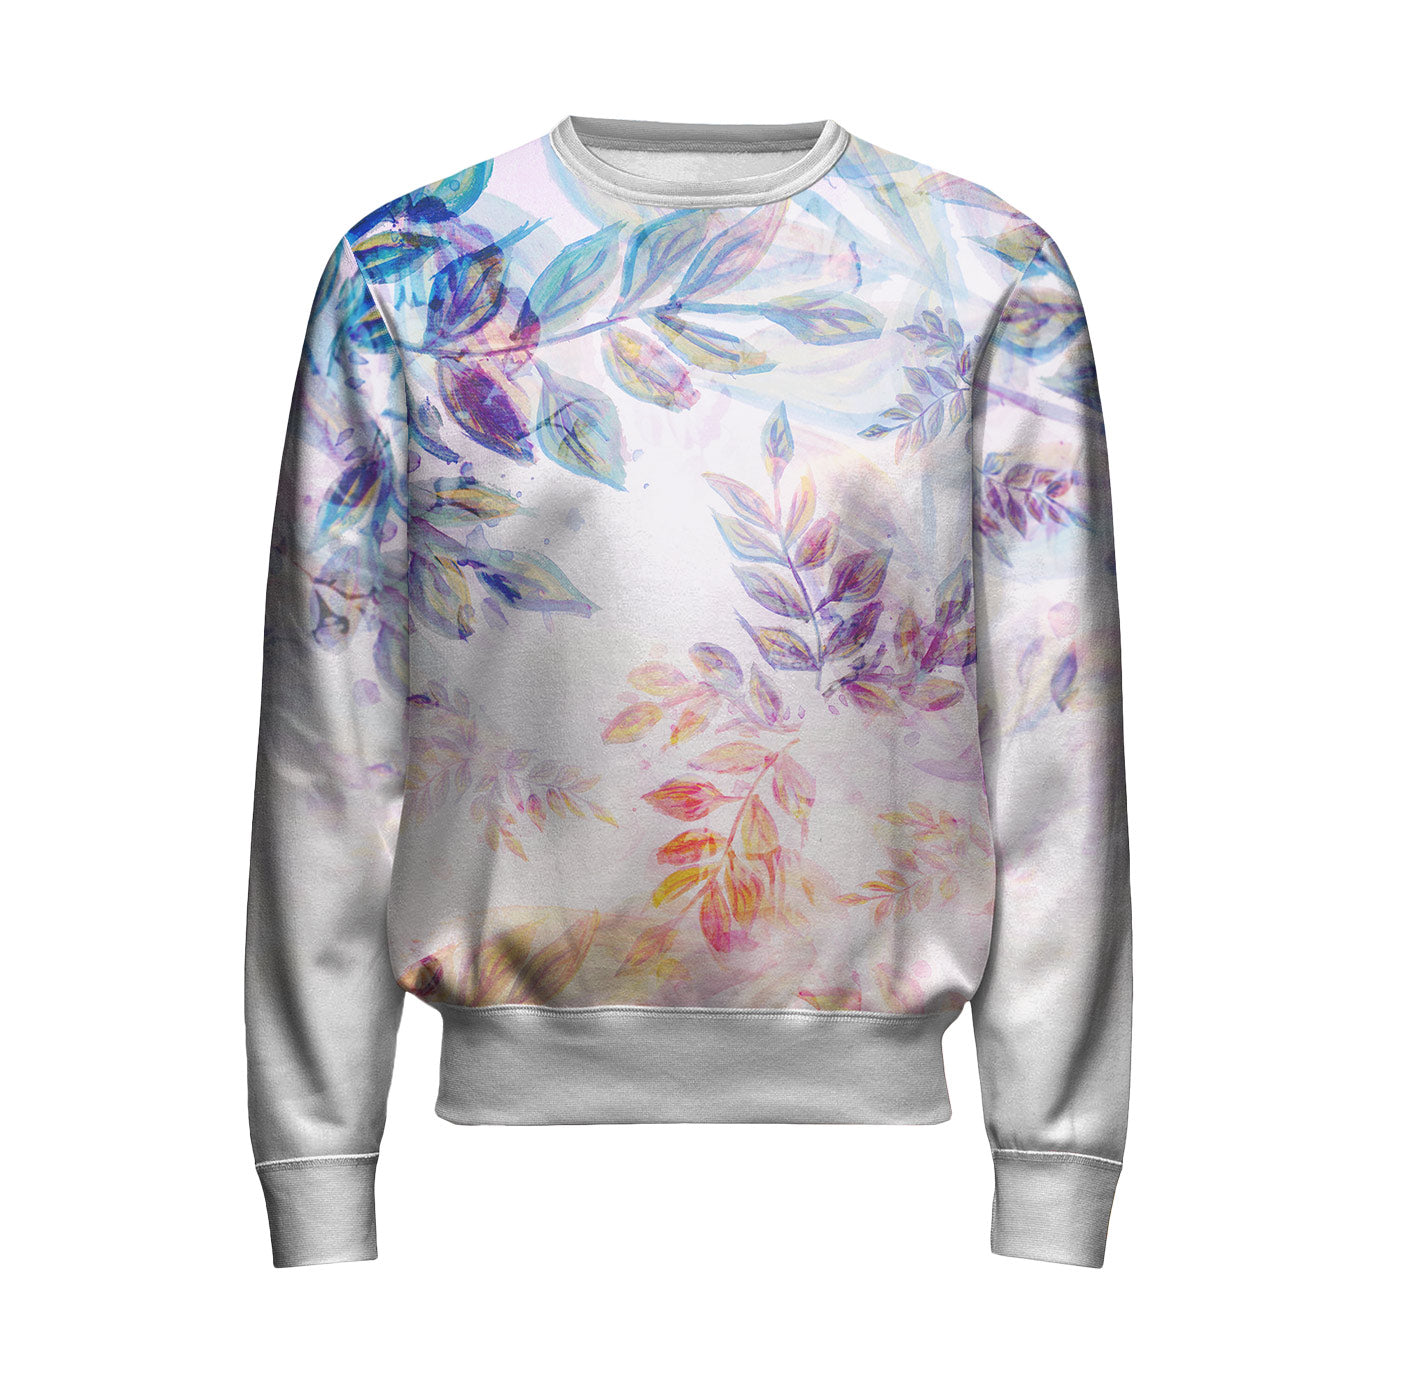 Sunset Bloom Sweatshirt